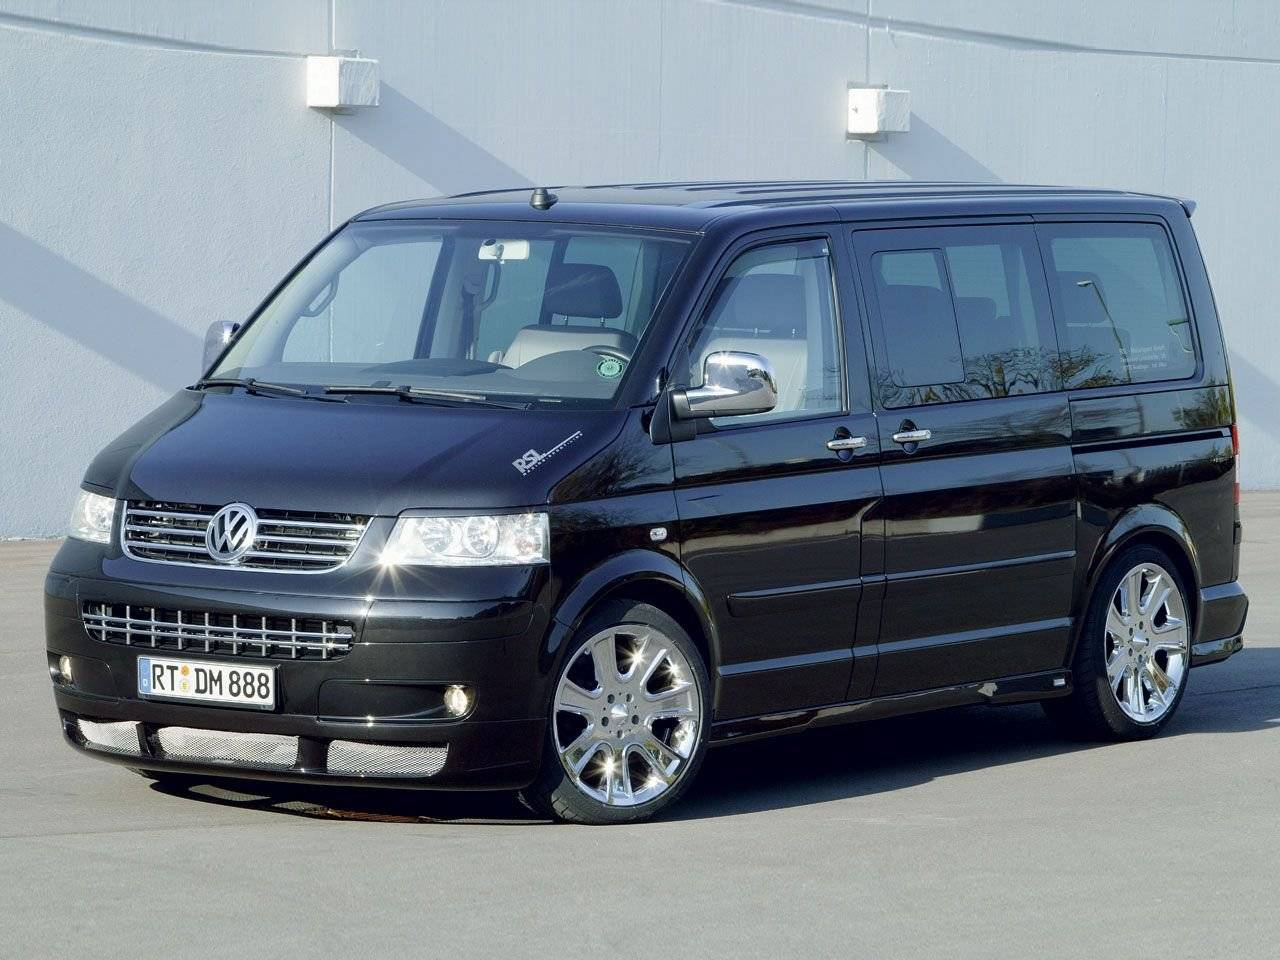 volkswagen t5 tuning van rsl tuning styling. Black Bedroom Furniture Sets. Home Design Ideas